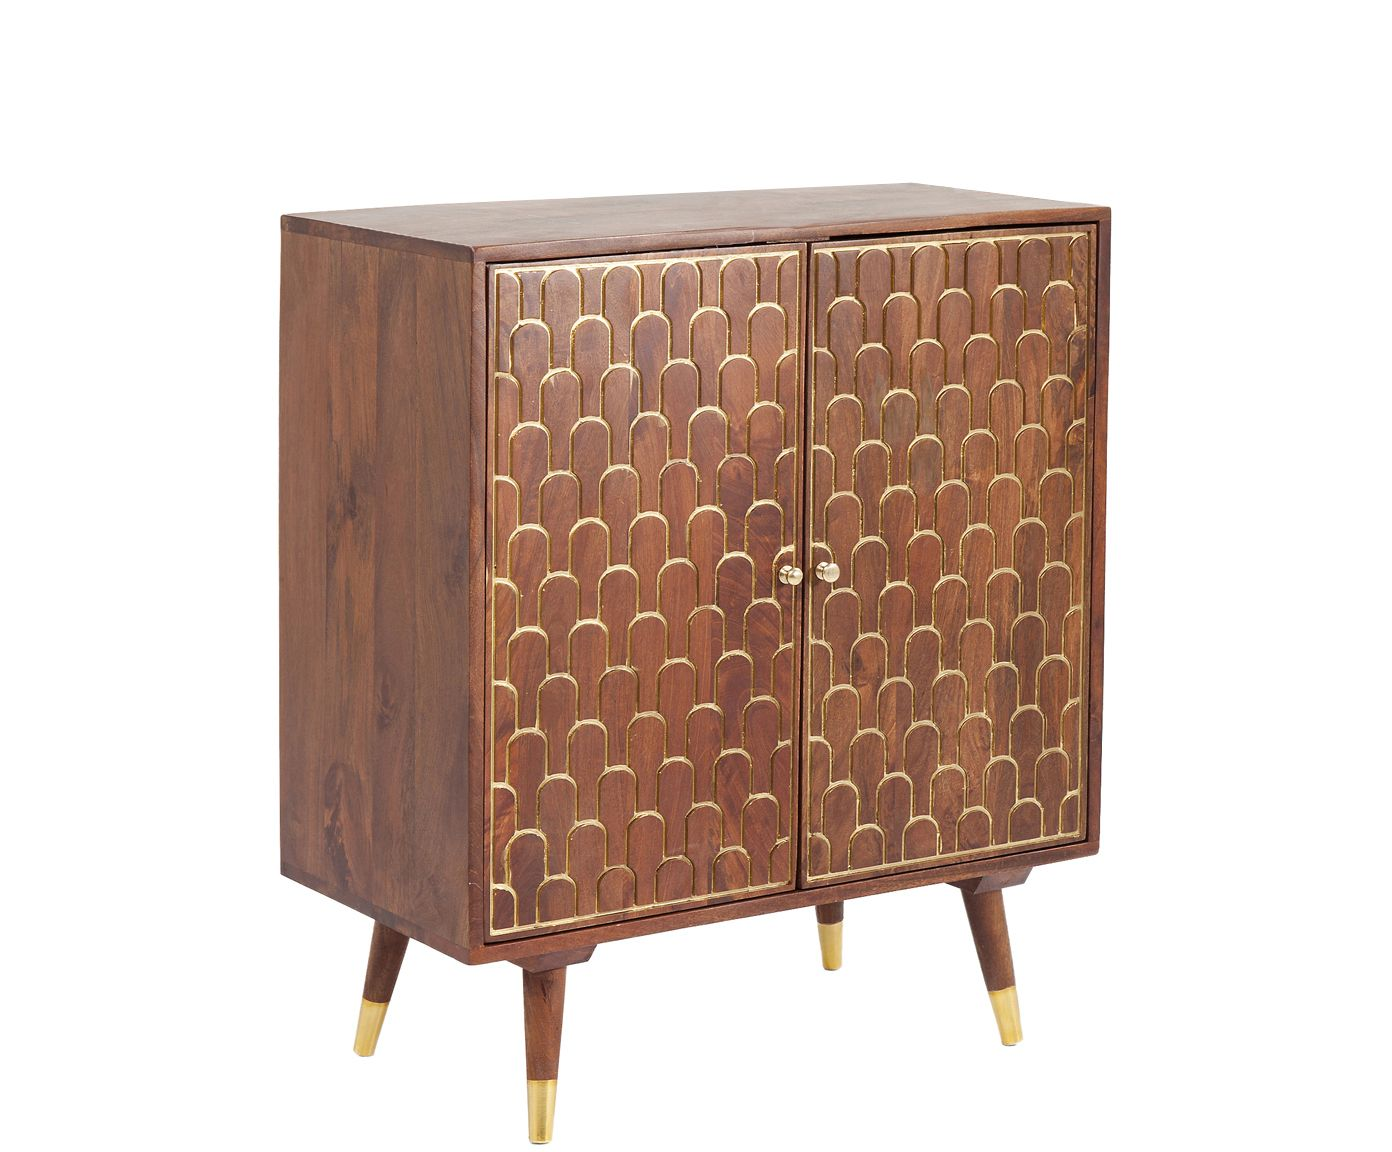 Design Of Sideboard S Design Of @ RoyalDesign